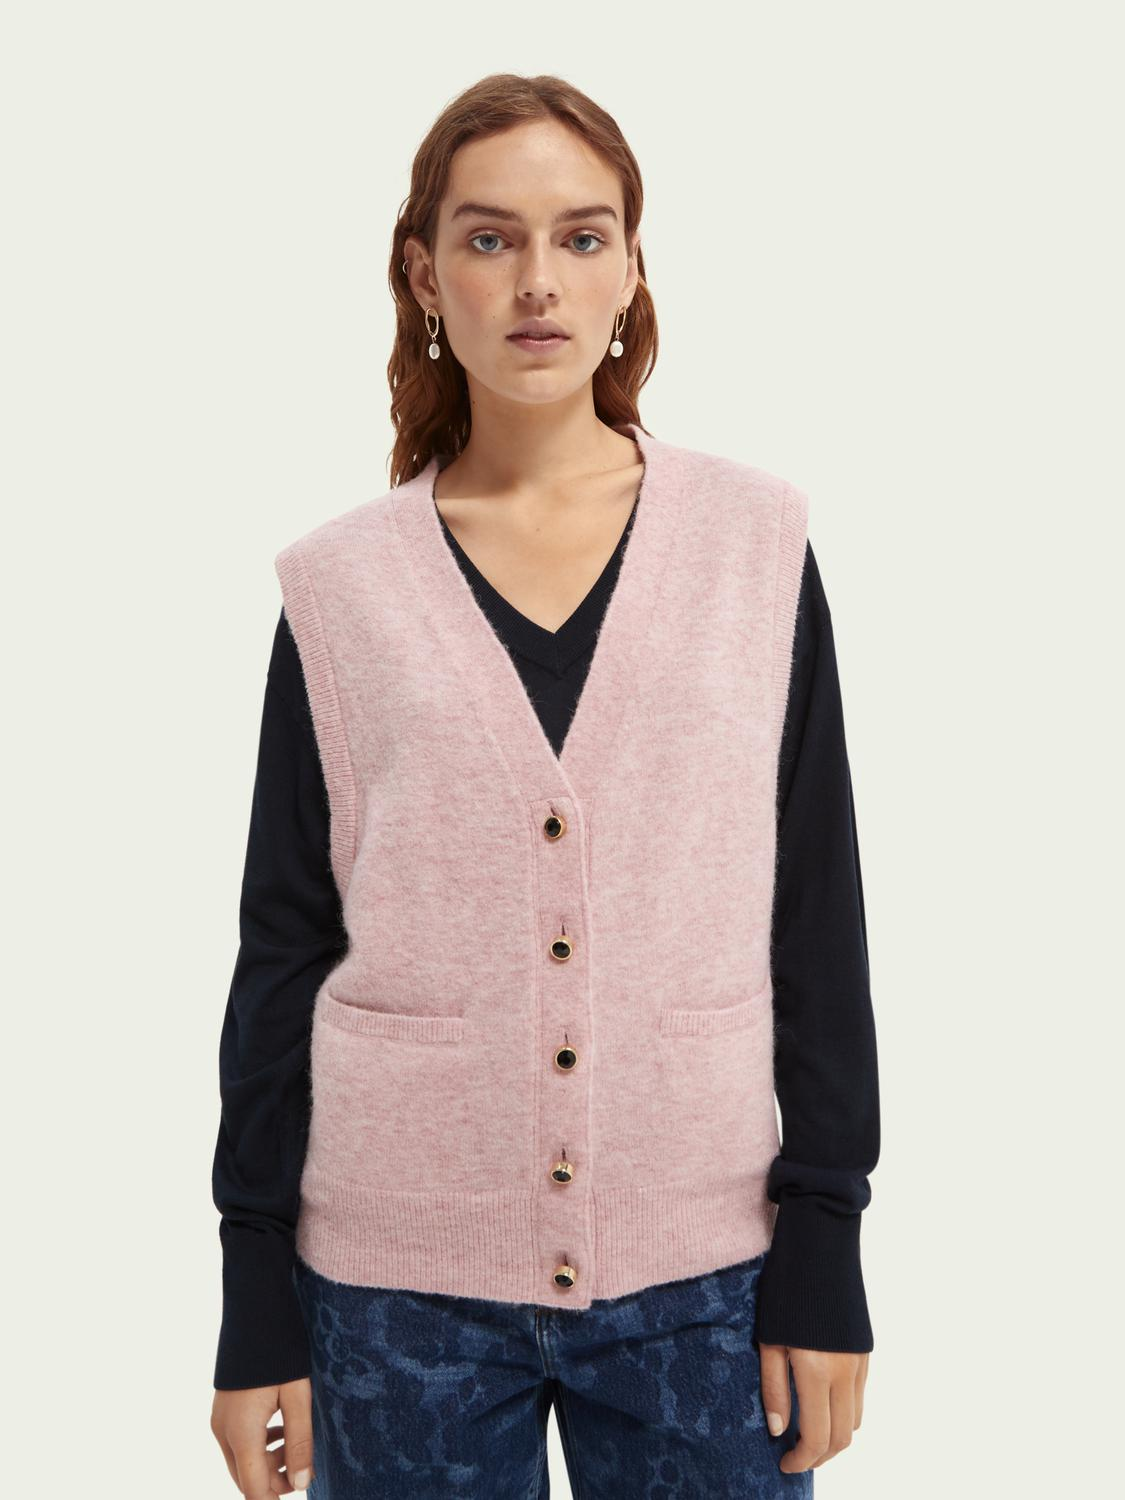 Fuzzy buttoned sweater vest